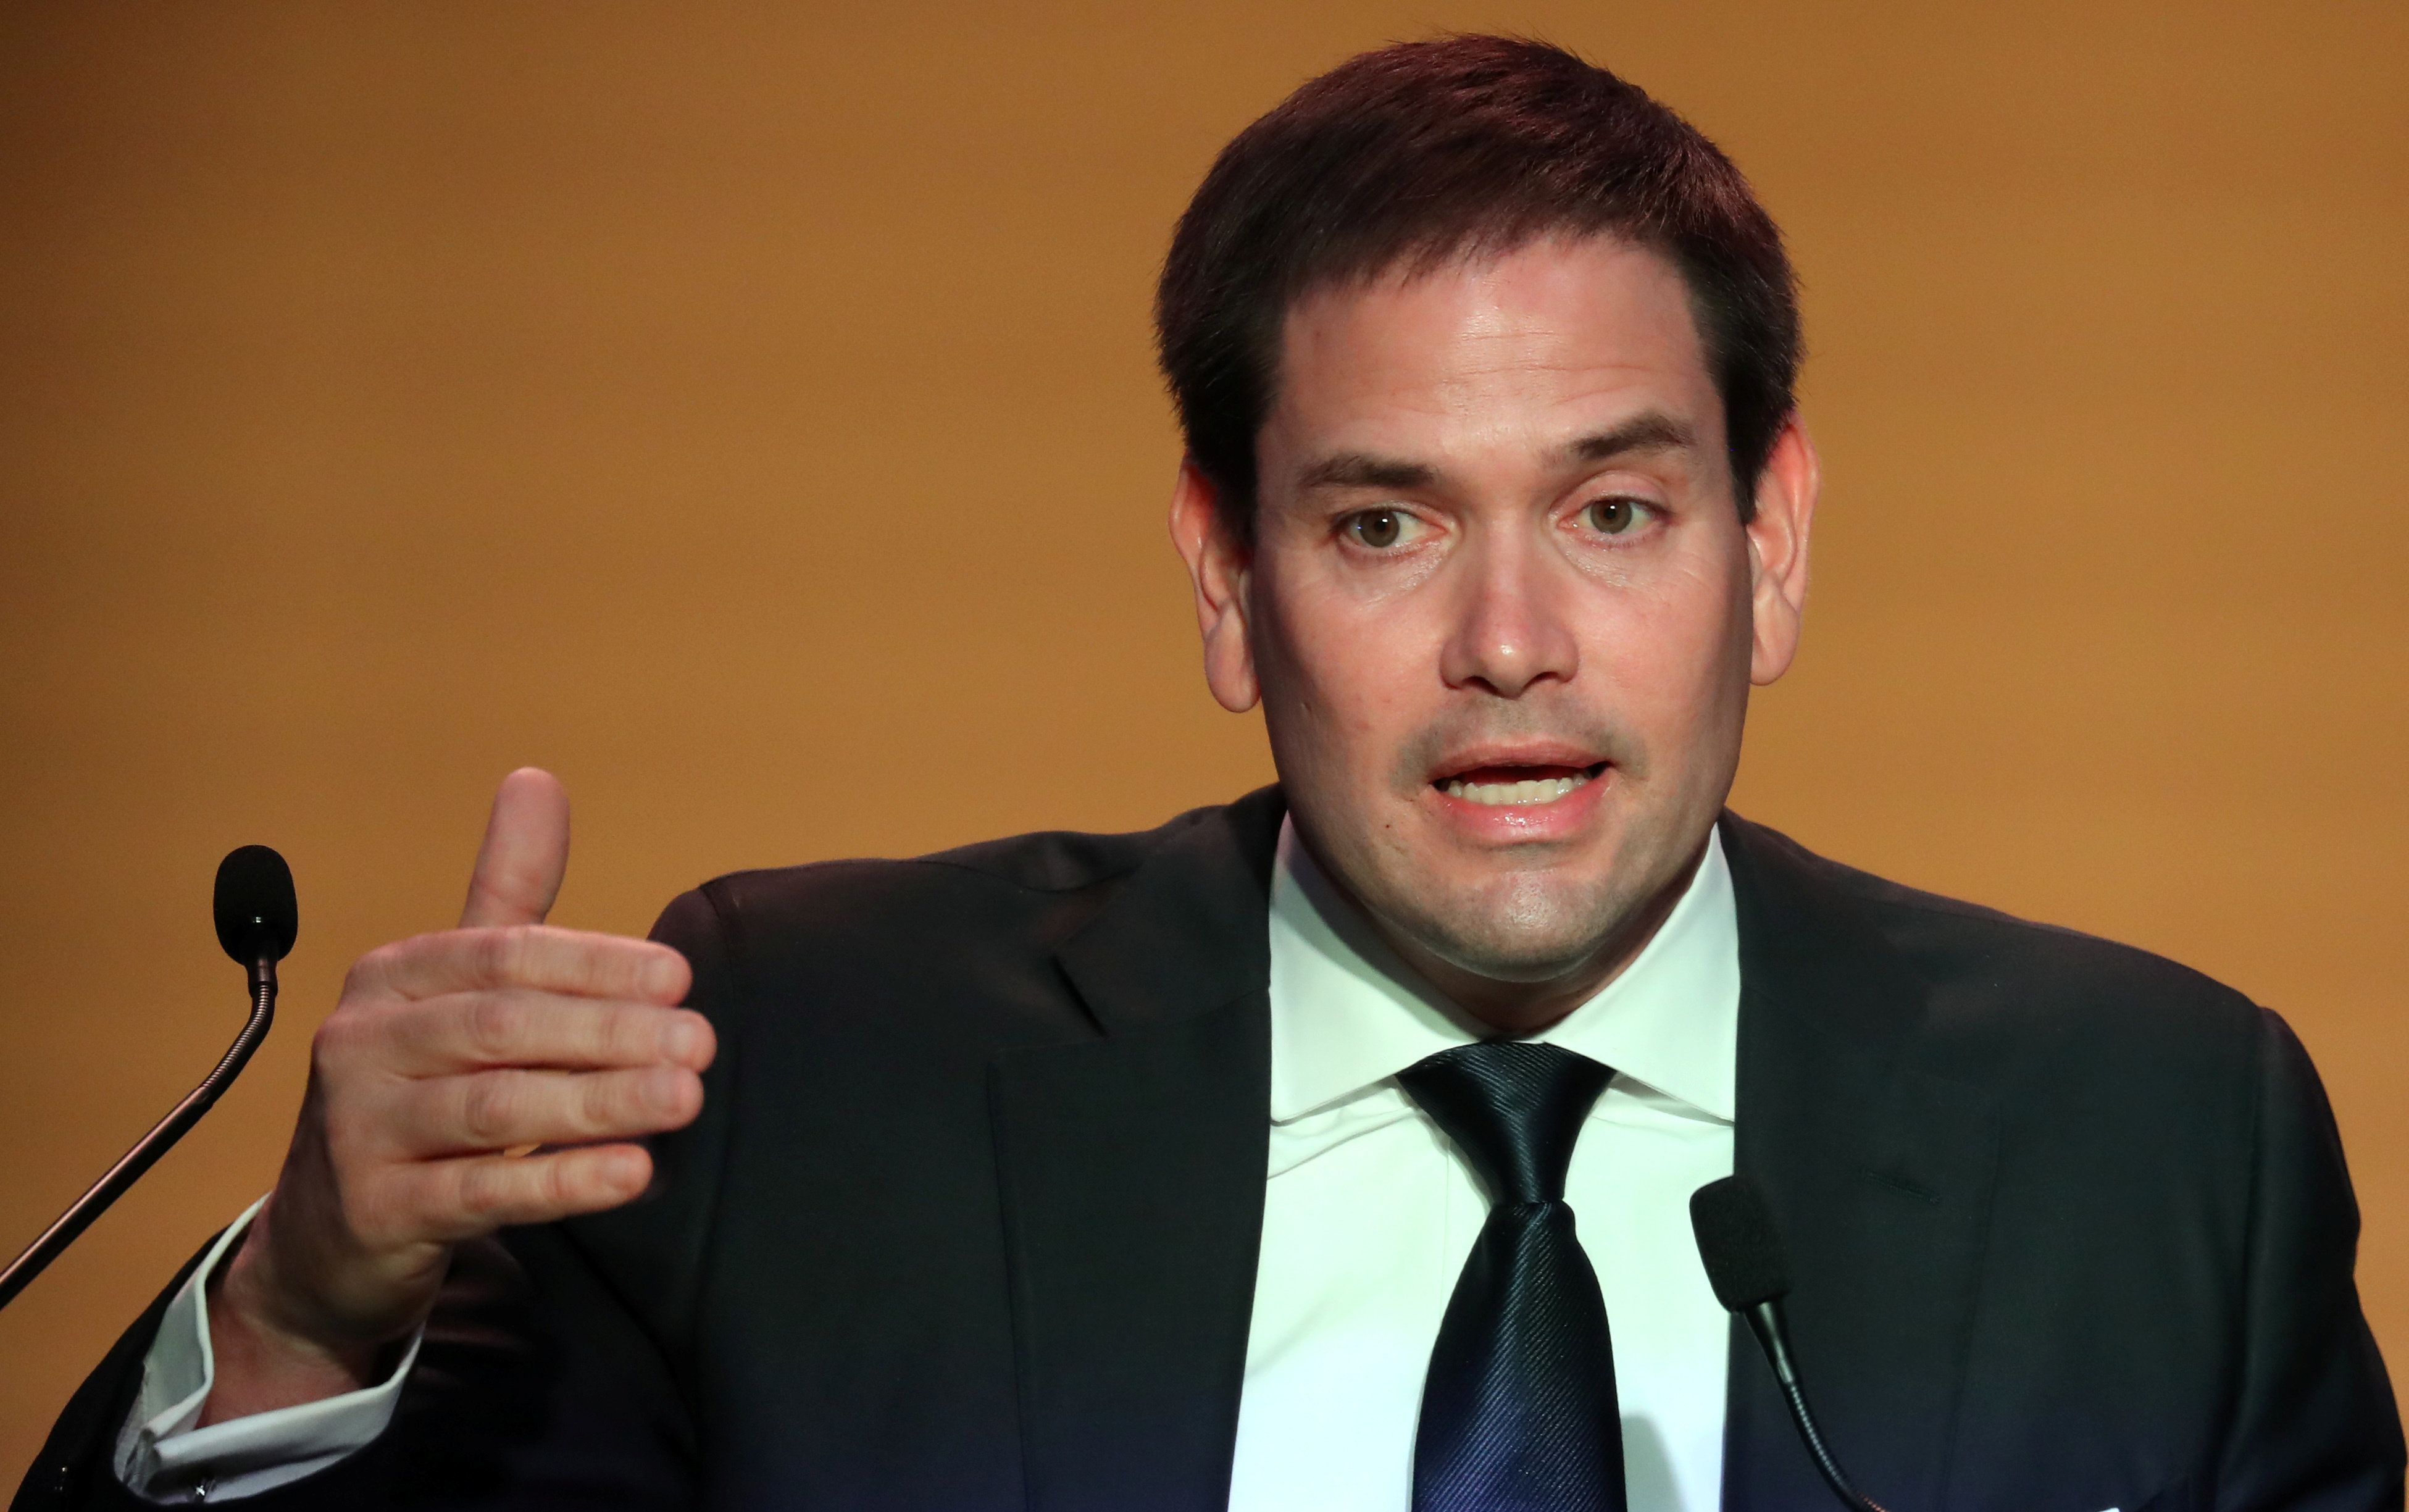 Sen. Marco Rubio (R-Fla.) has proposed letting new parents dip into their Social Security benefits.